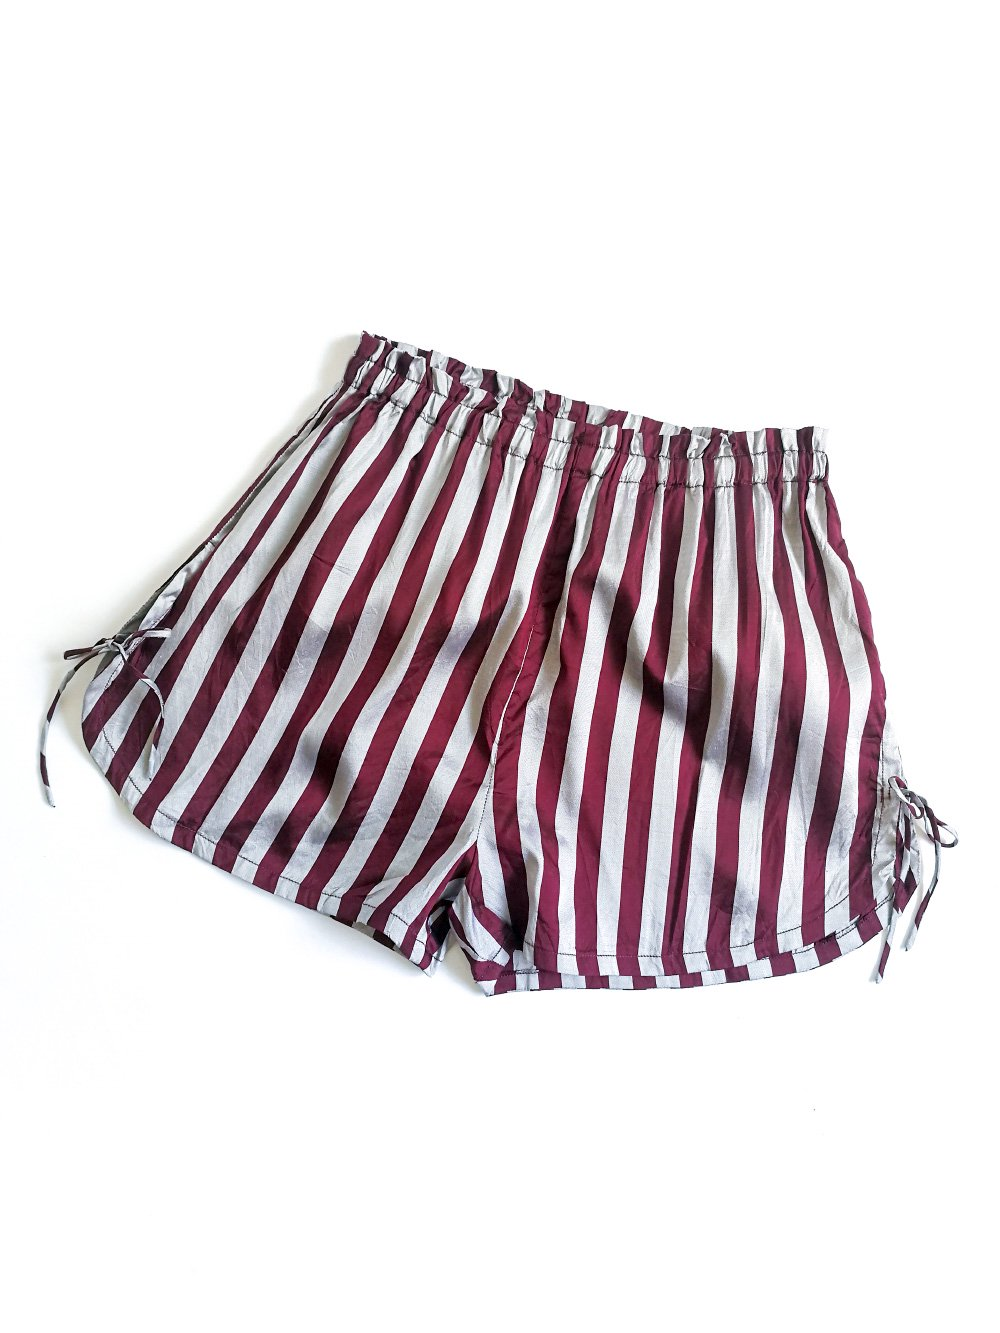 Shorts / original bordeaux